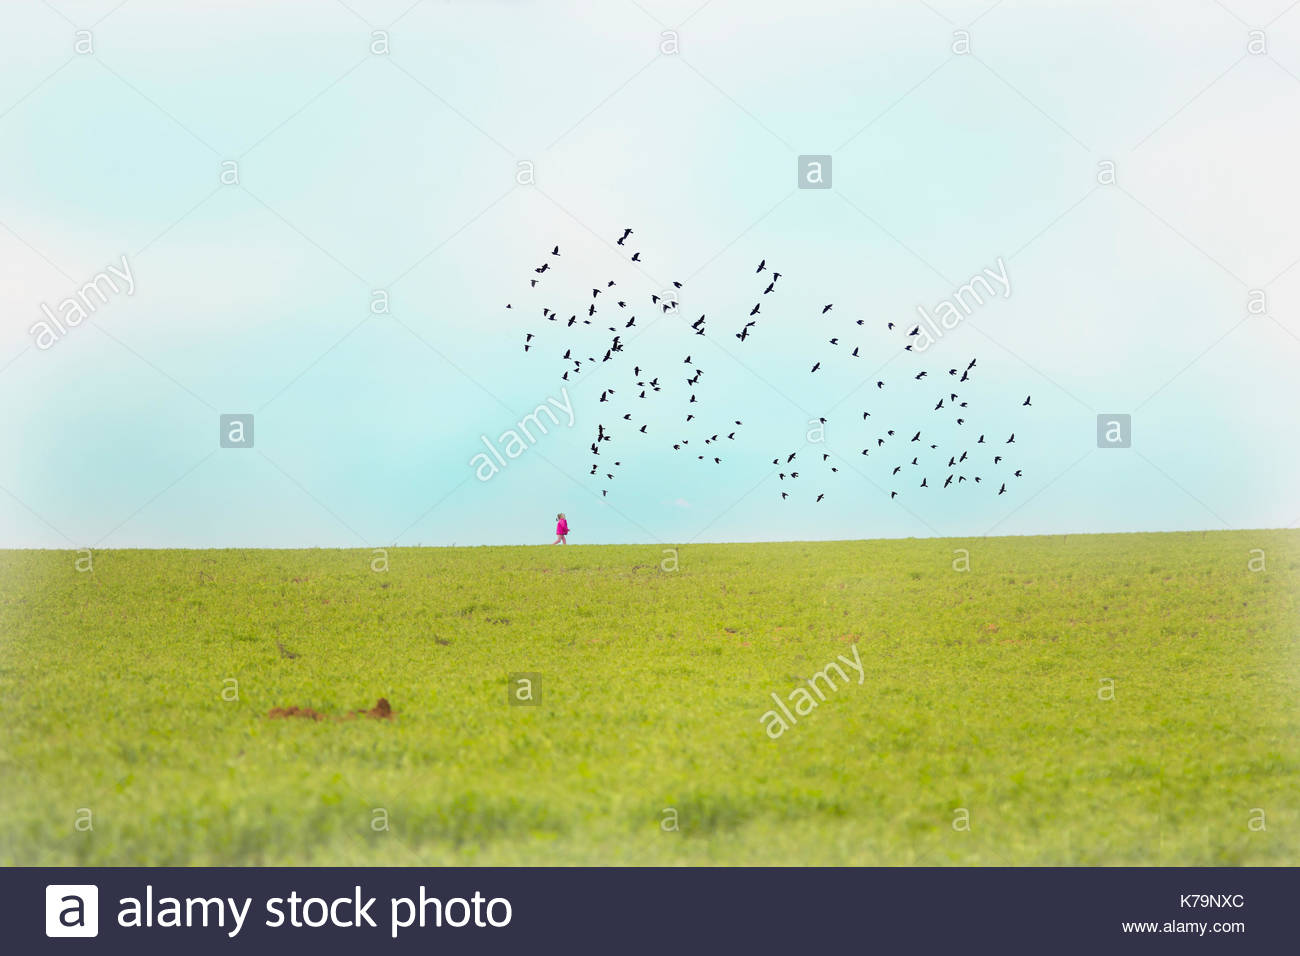 A girl in a pink coat with a flock of birds overhead - Stock Image